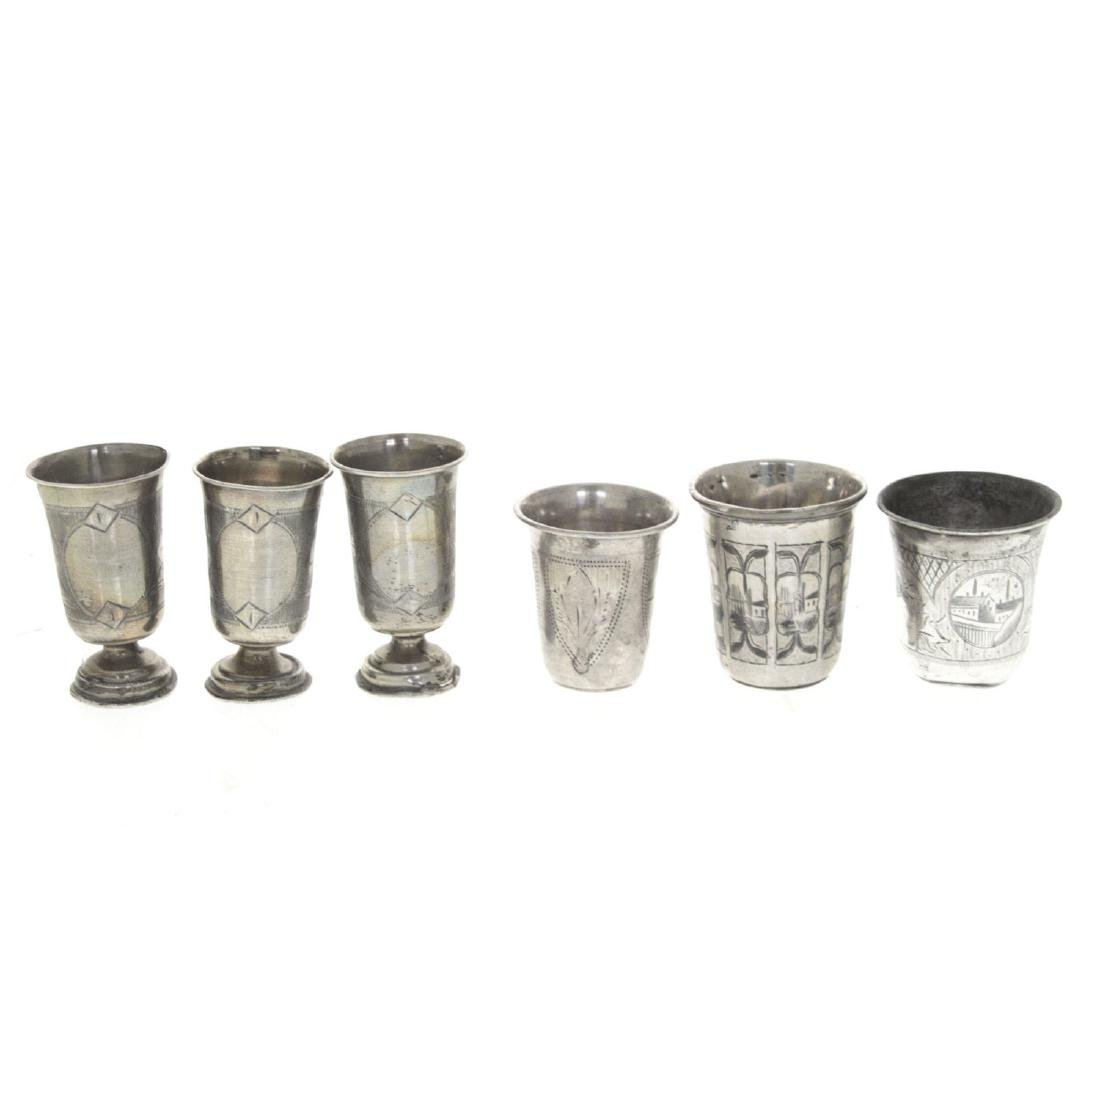 Six Russian Silver Cups Tots, Late 19th - Early 20th